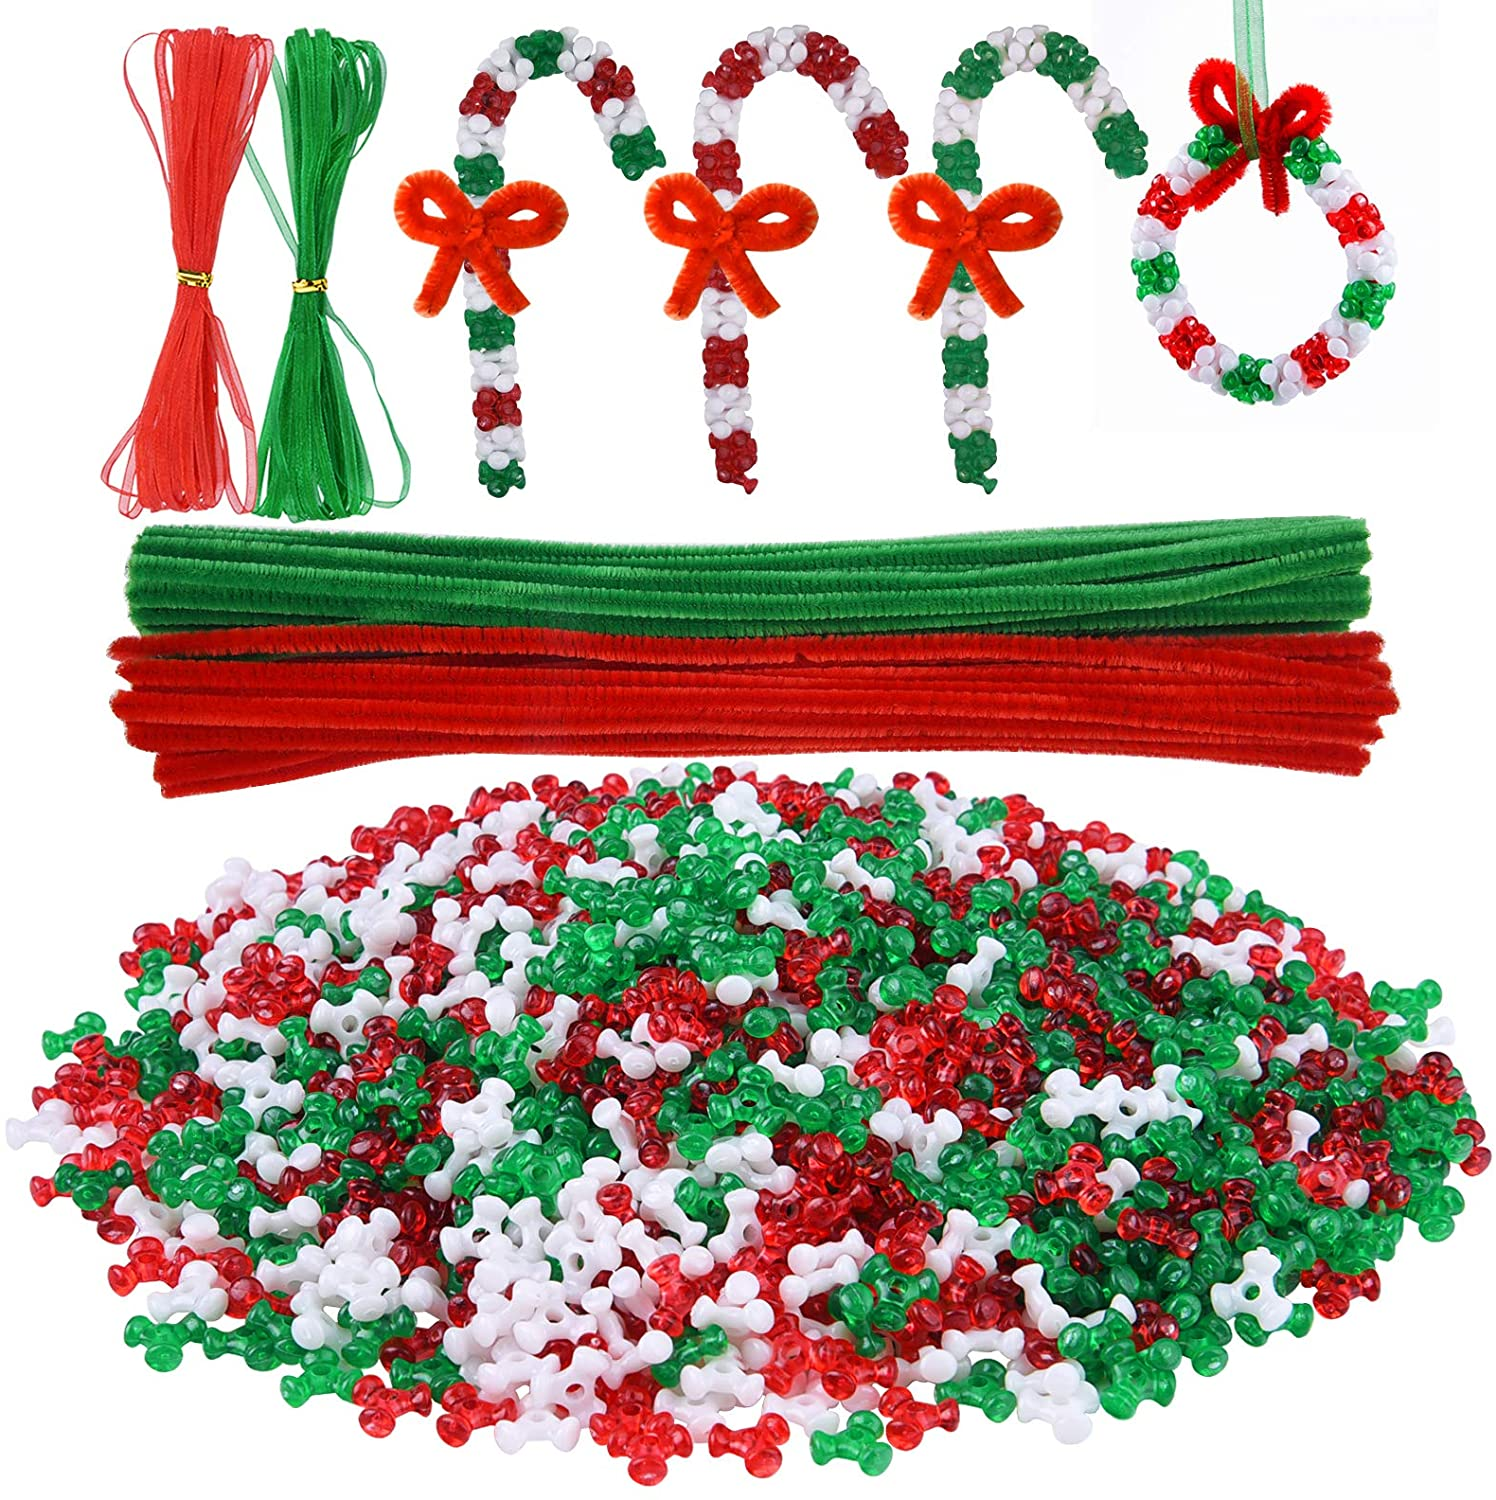 Livder Christmas Beads Wreath Cane Ornament Kit, 1500 Pieces Triangle Beads, 60 Pieces Chenille Stems, 64 Feet Ribbons for Xmas Craft House Tree Decorations